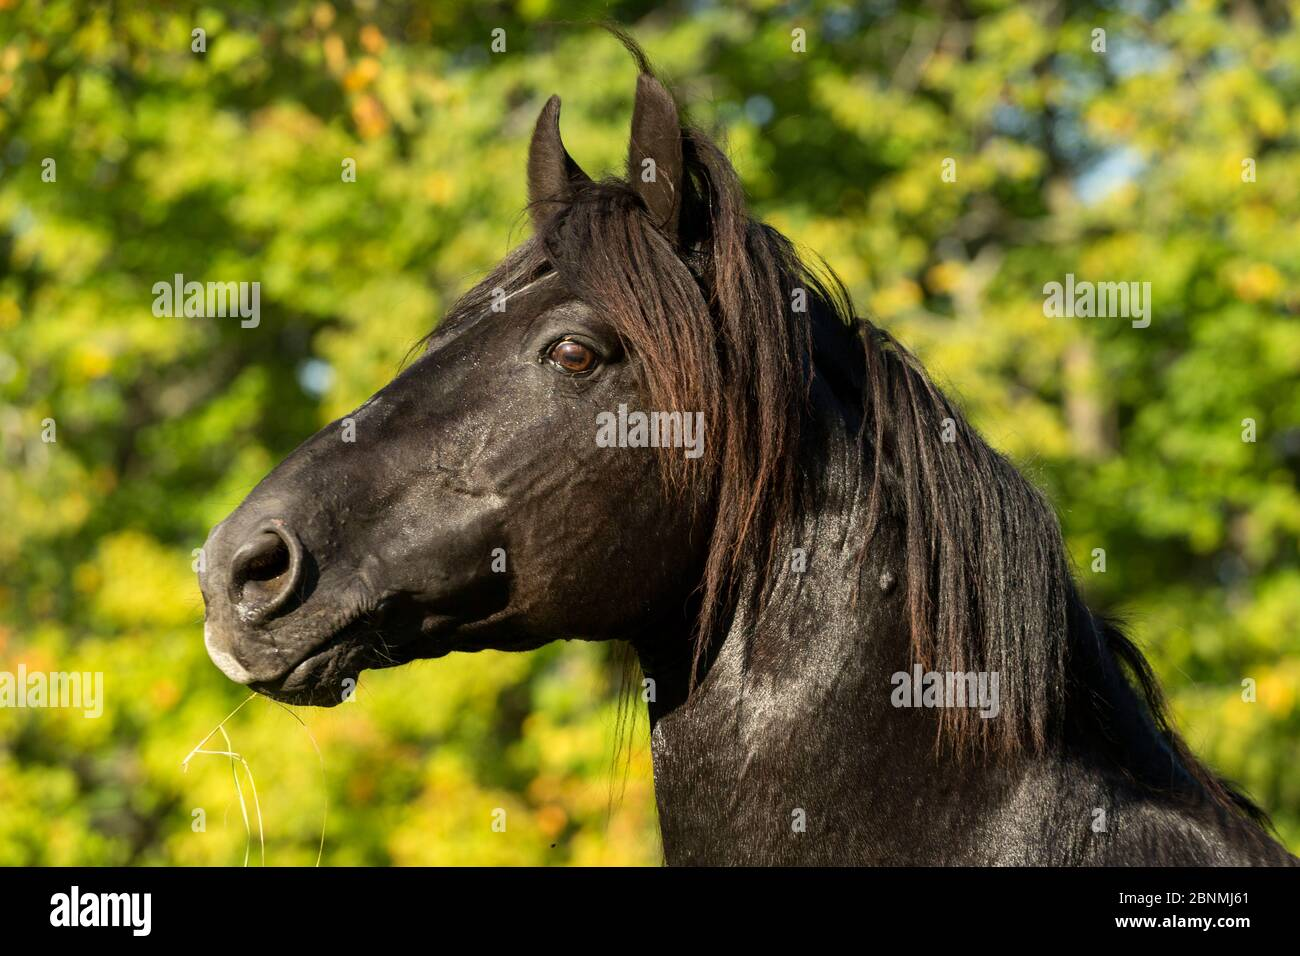 Portrait Of Ferari A Canadian Horse Stallion Multi Champion Cumberland Ontario Canada Critically Endangered Horse Breed Stock Photo Alamy